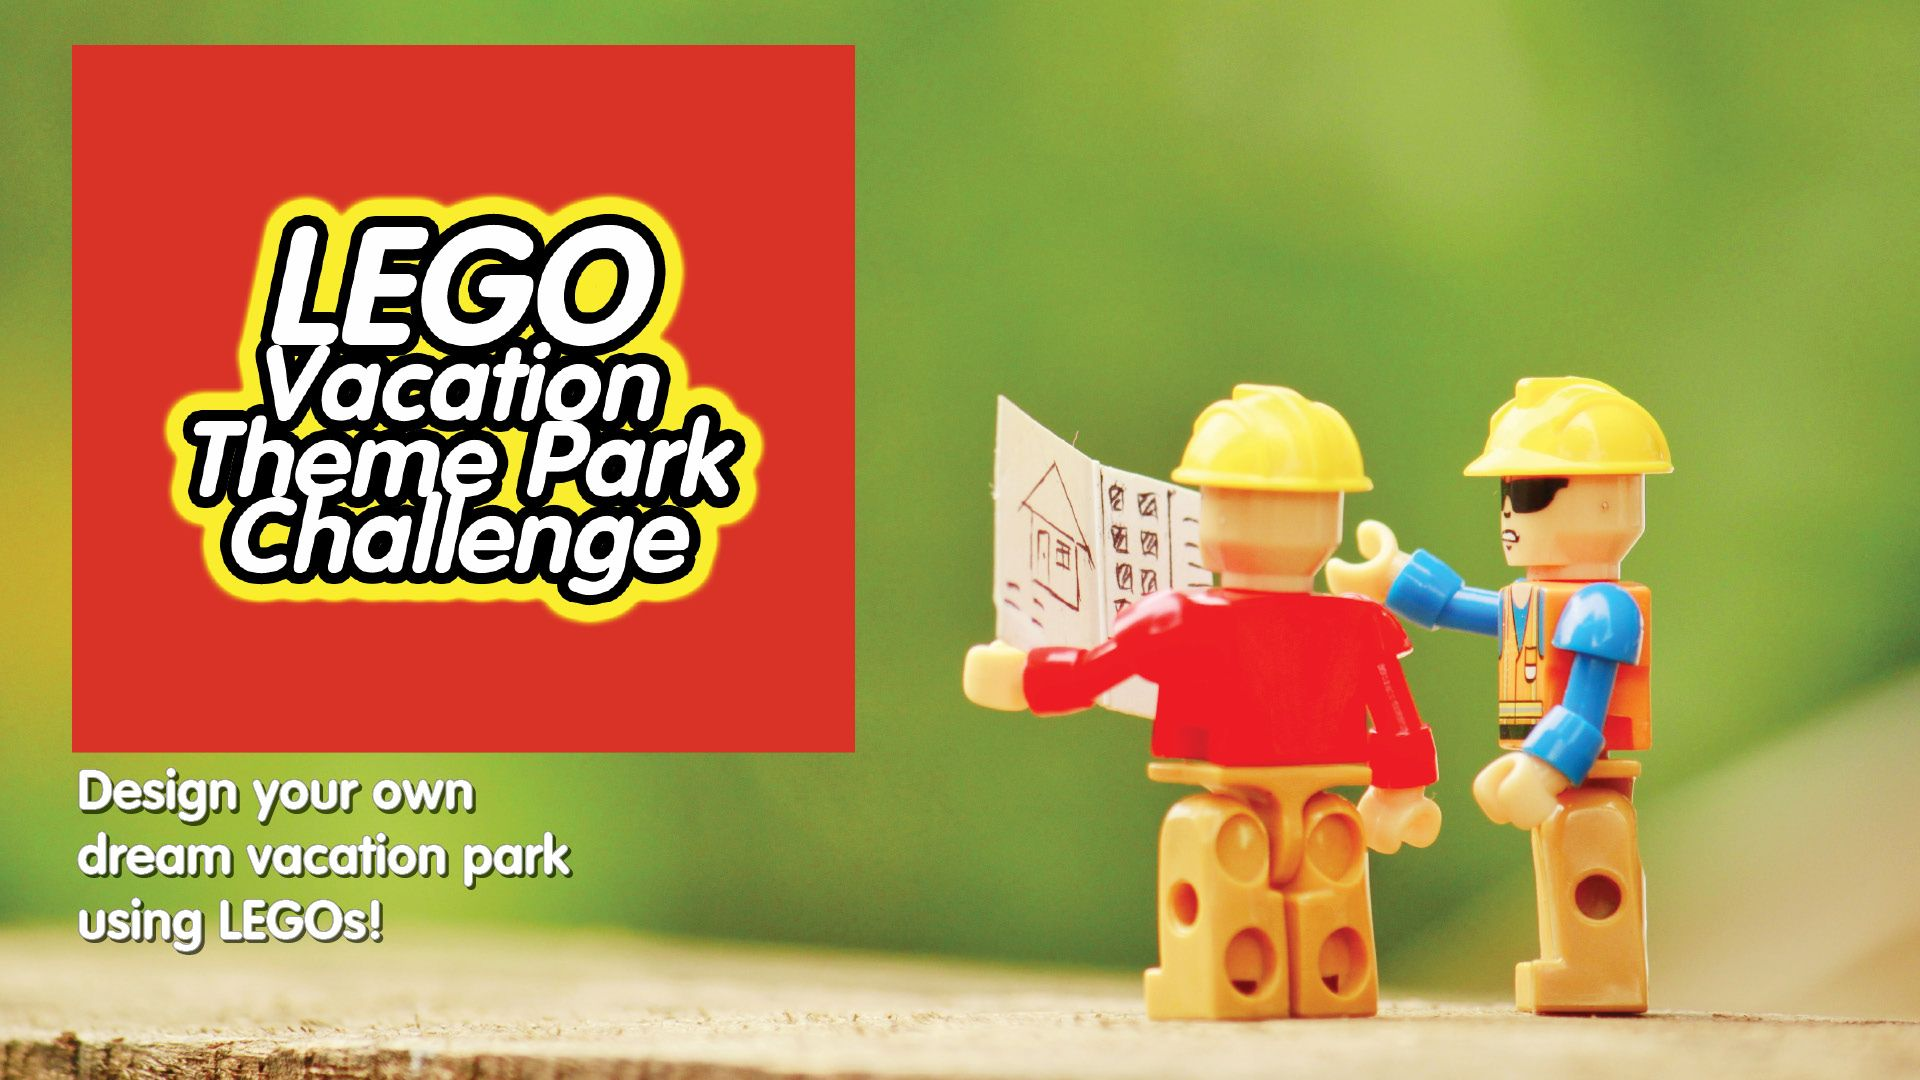 Lego Online Program: Vacation Theme Park at Patchogue-Medford Library